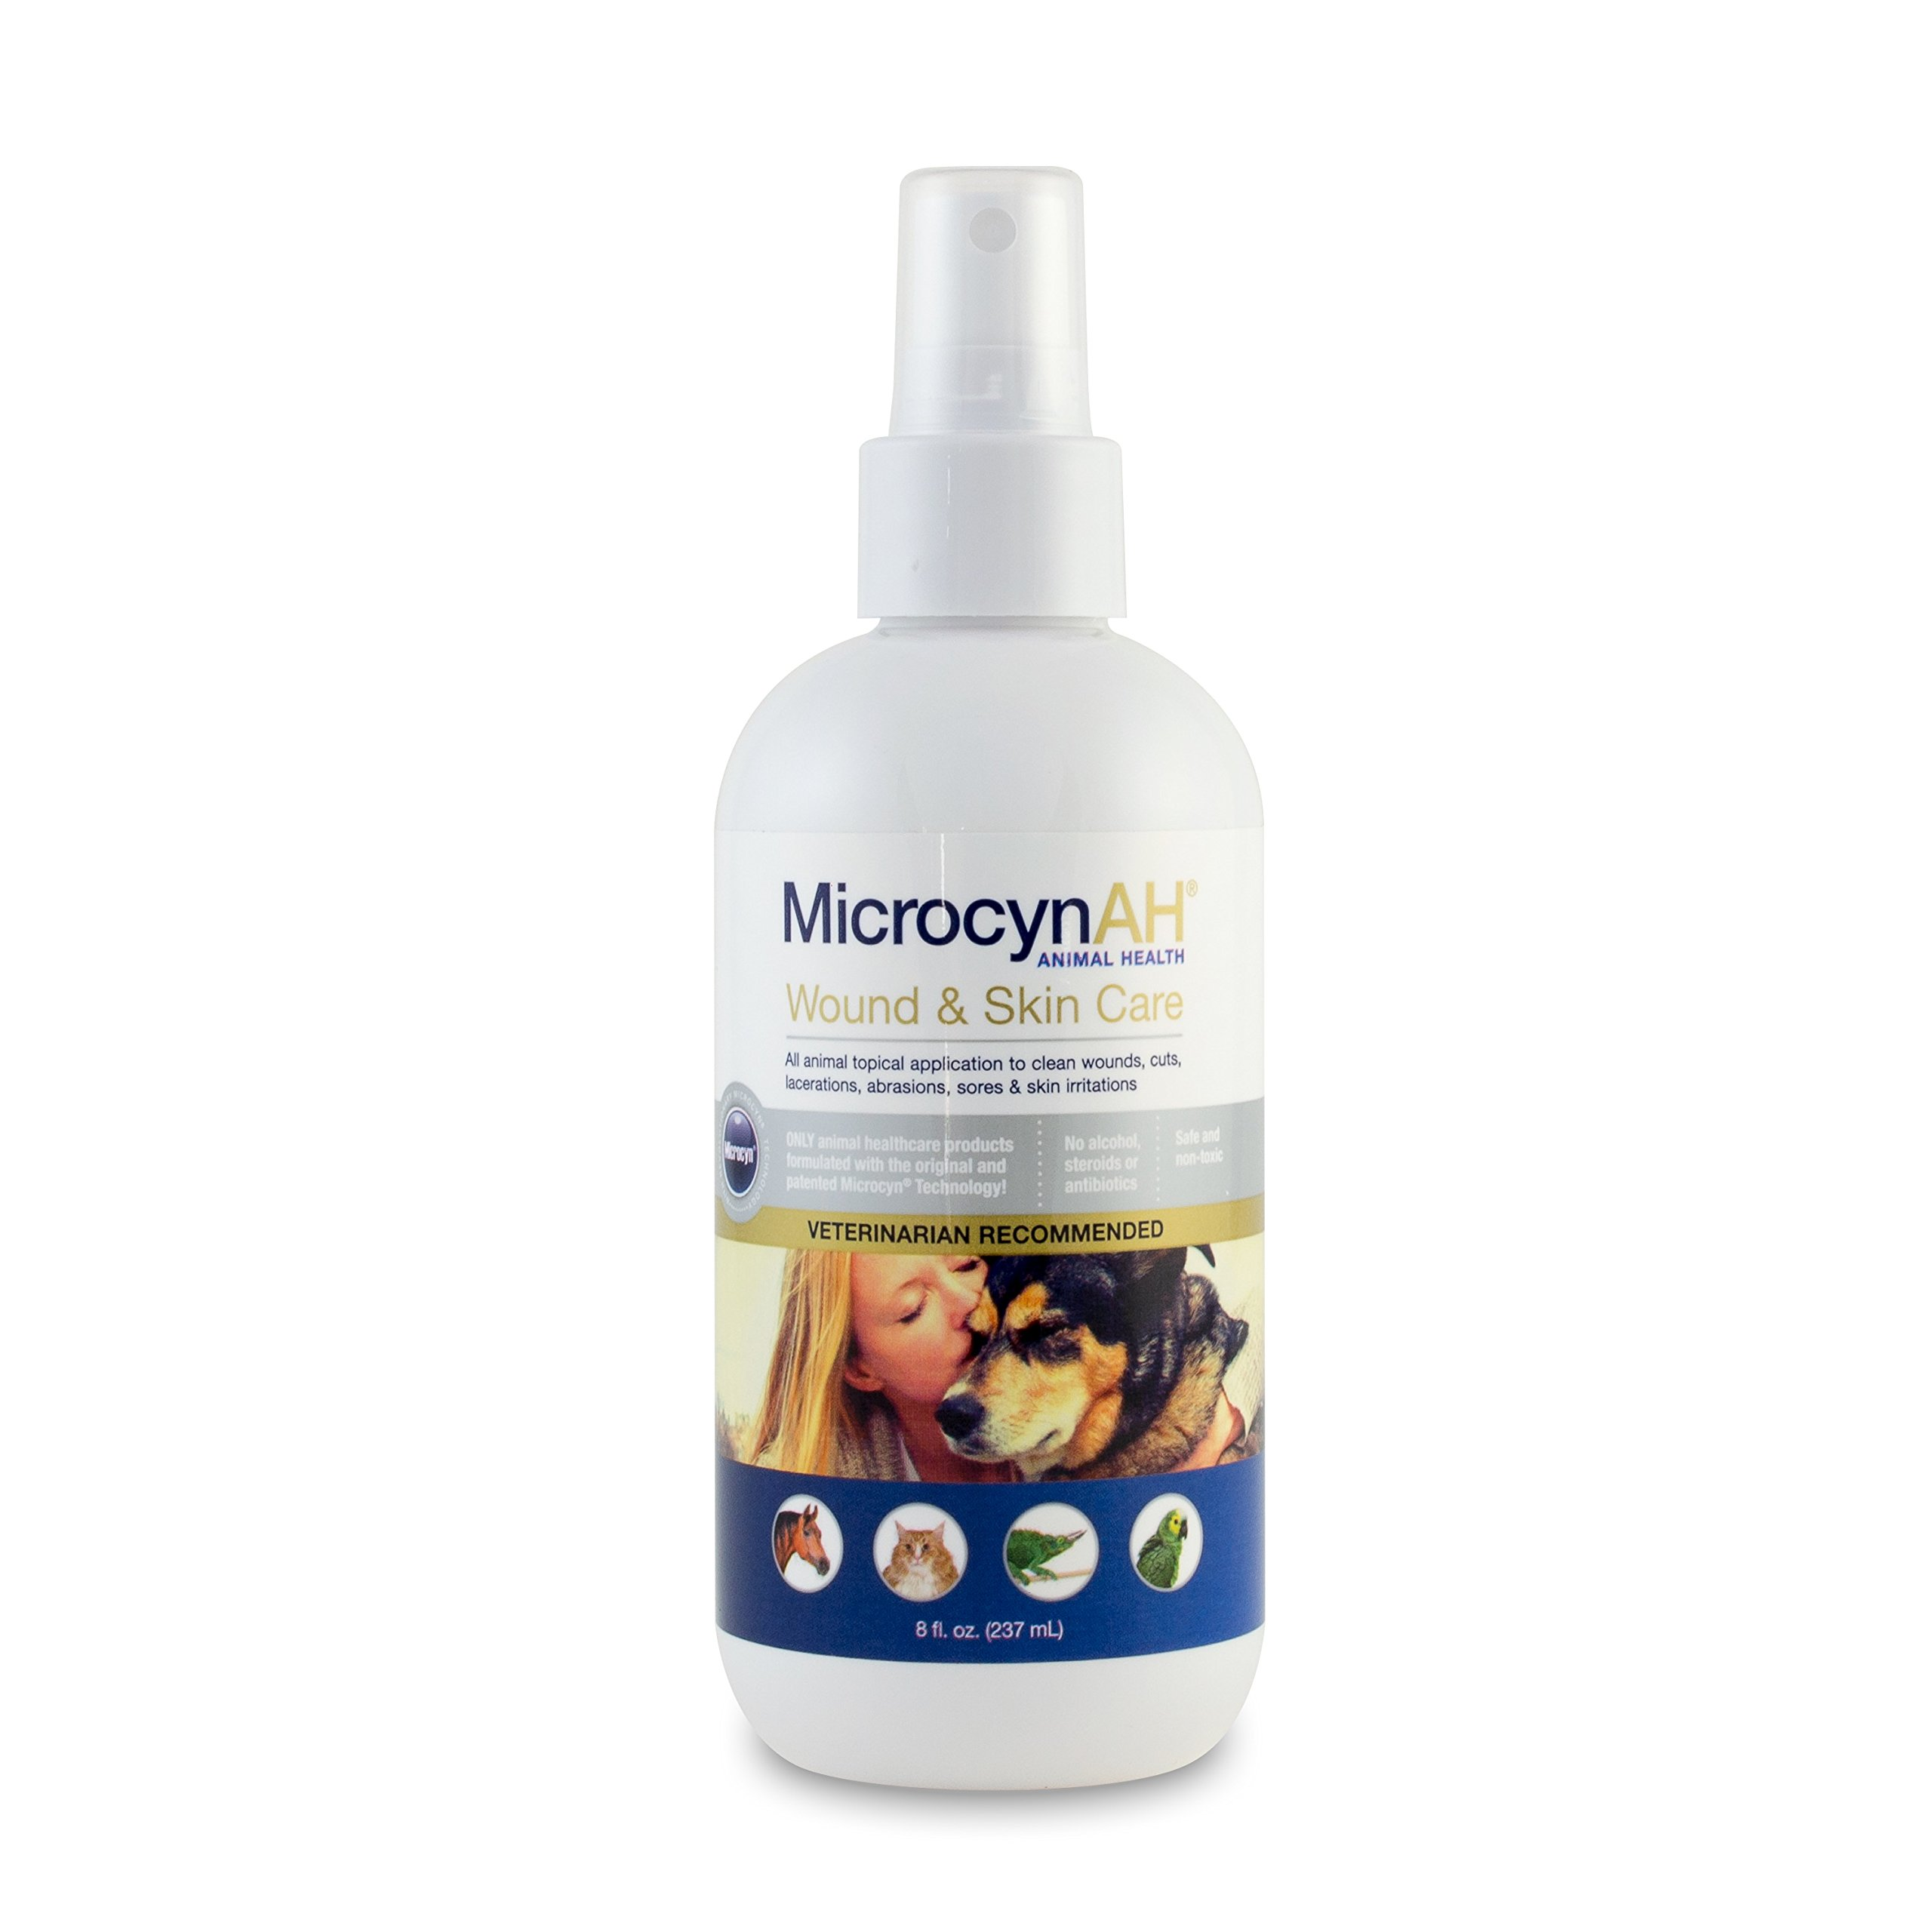 MicrocynAH Wound and Skin Care